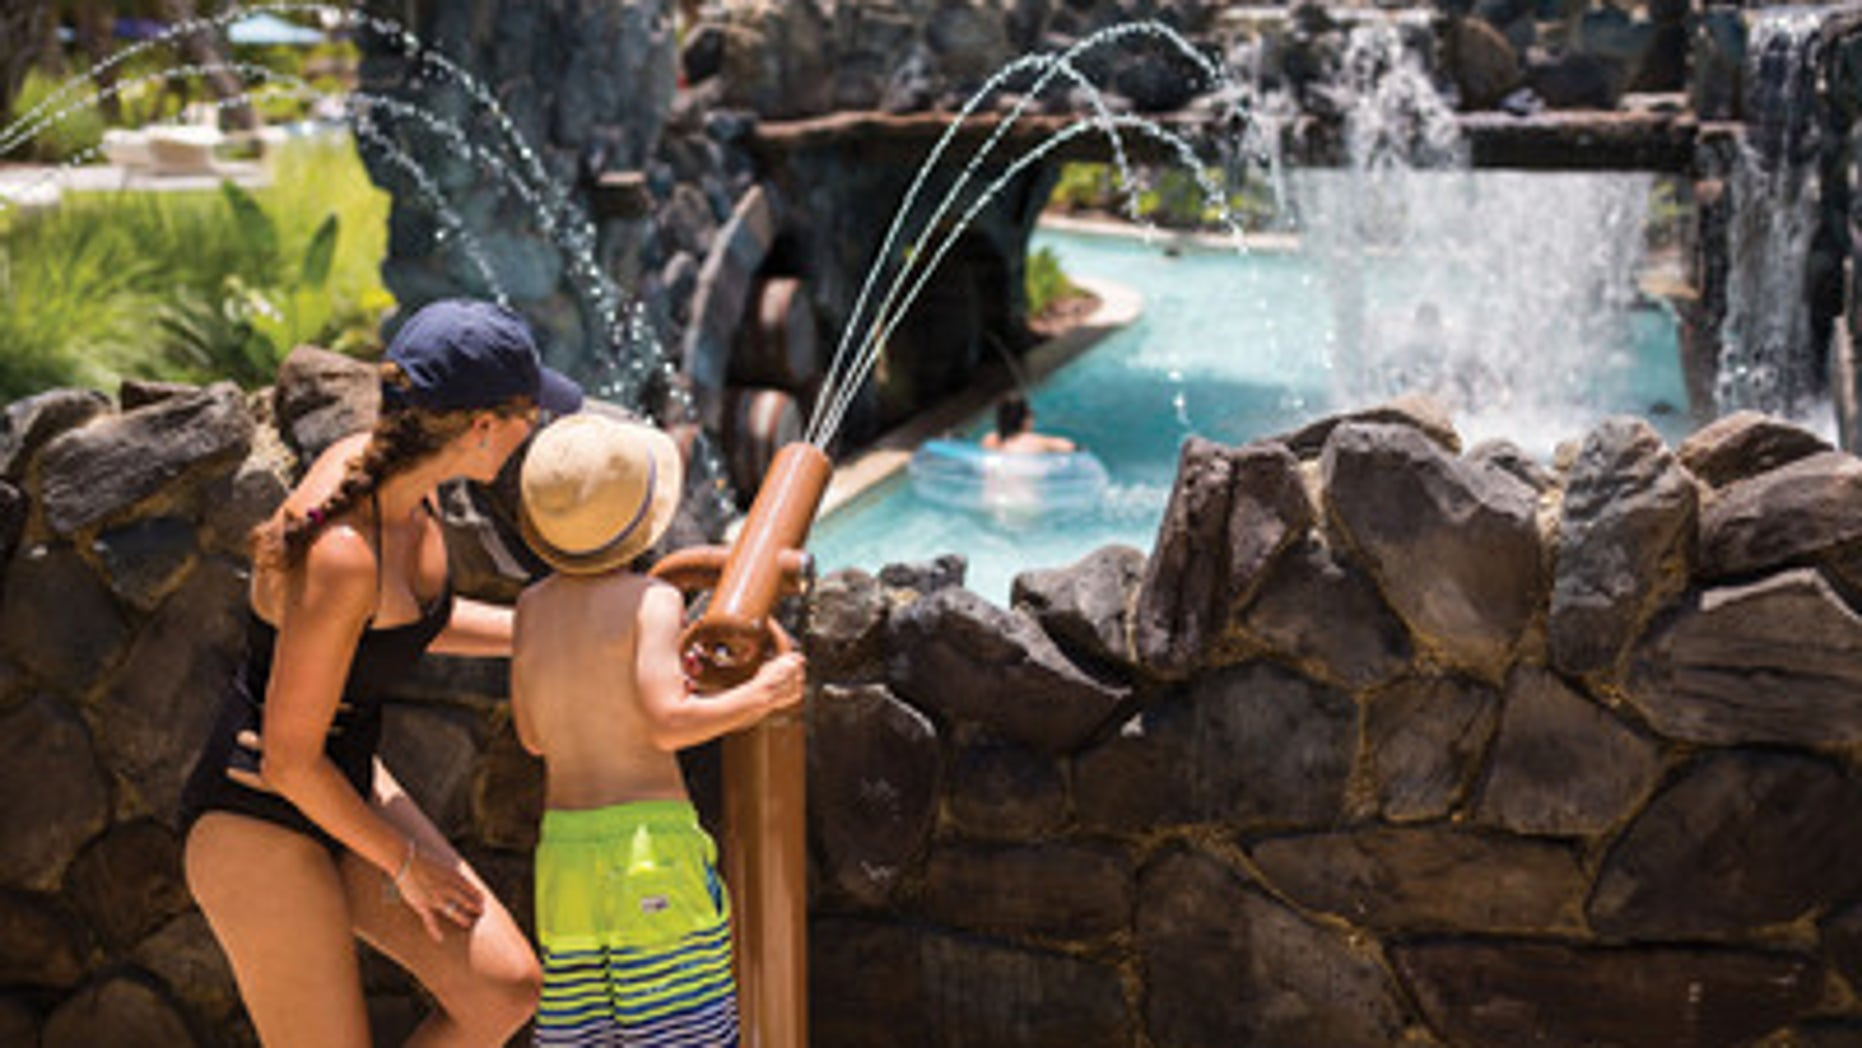 The pool area at the Four Seasons Orlando at Walt Disney World has plenty of activities for active kids.